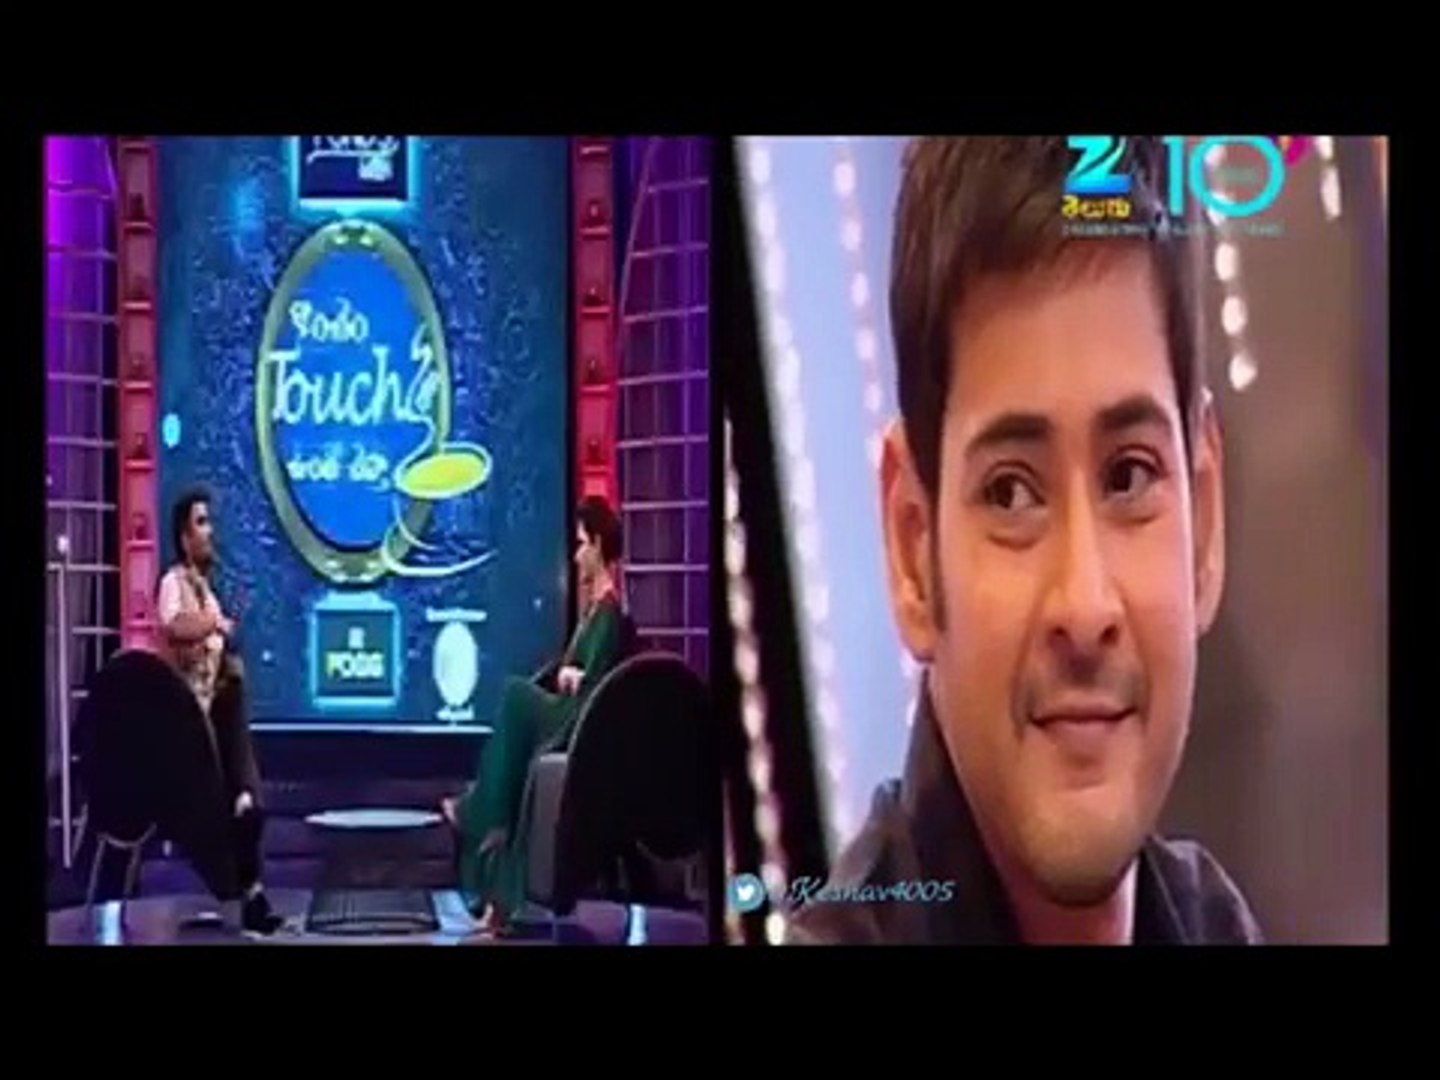 Celebritys about Super Star Mahesh babu and His character